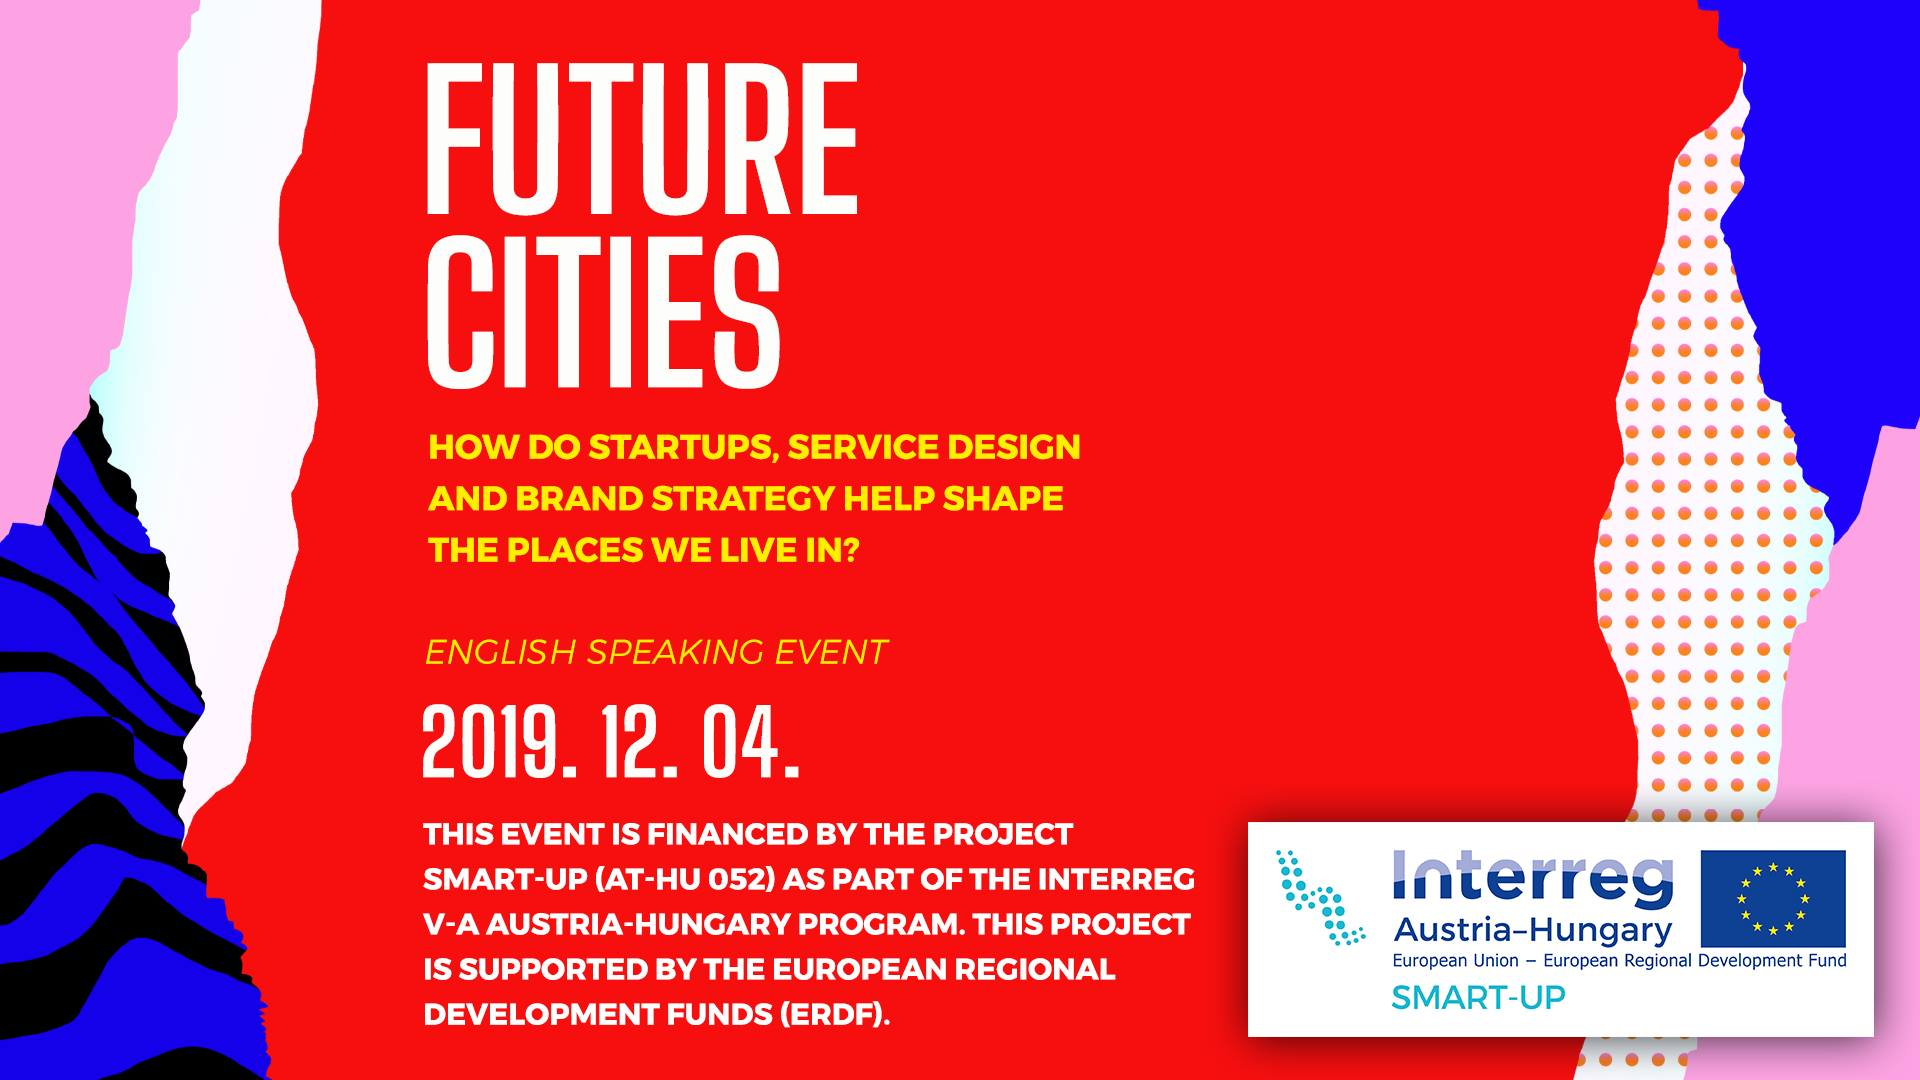 Future Cities: an event on Startups, Service Design and Branding